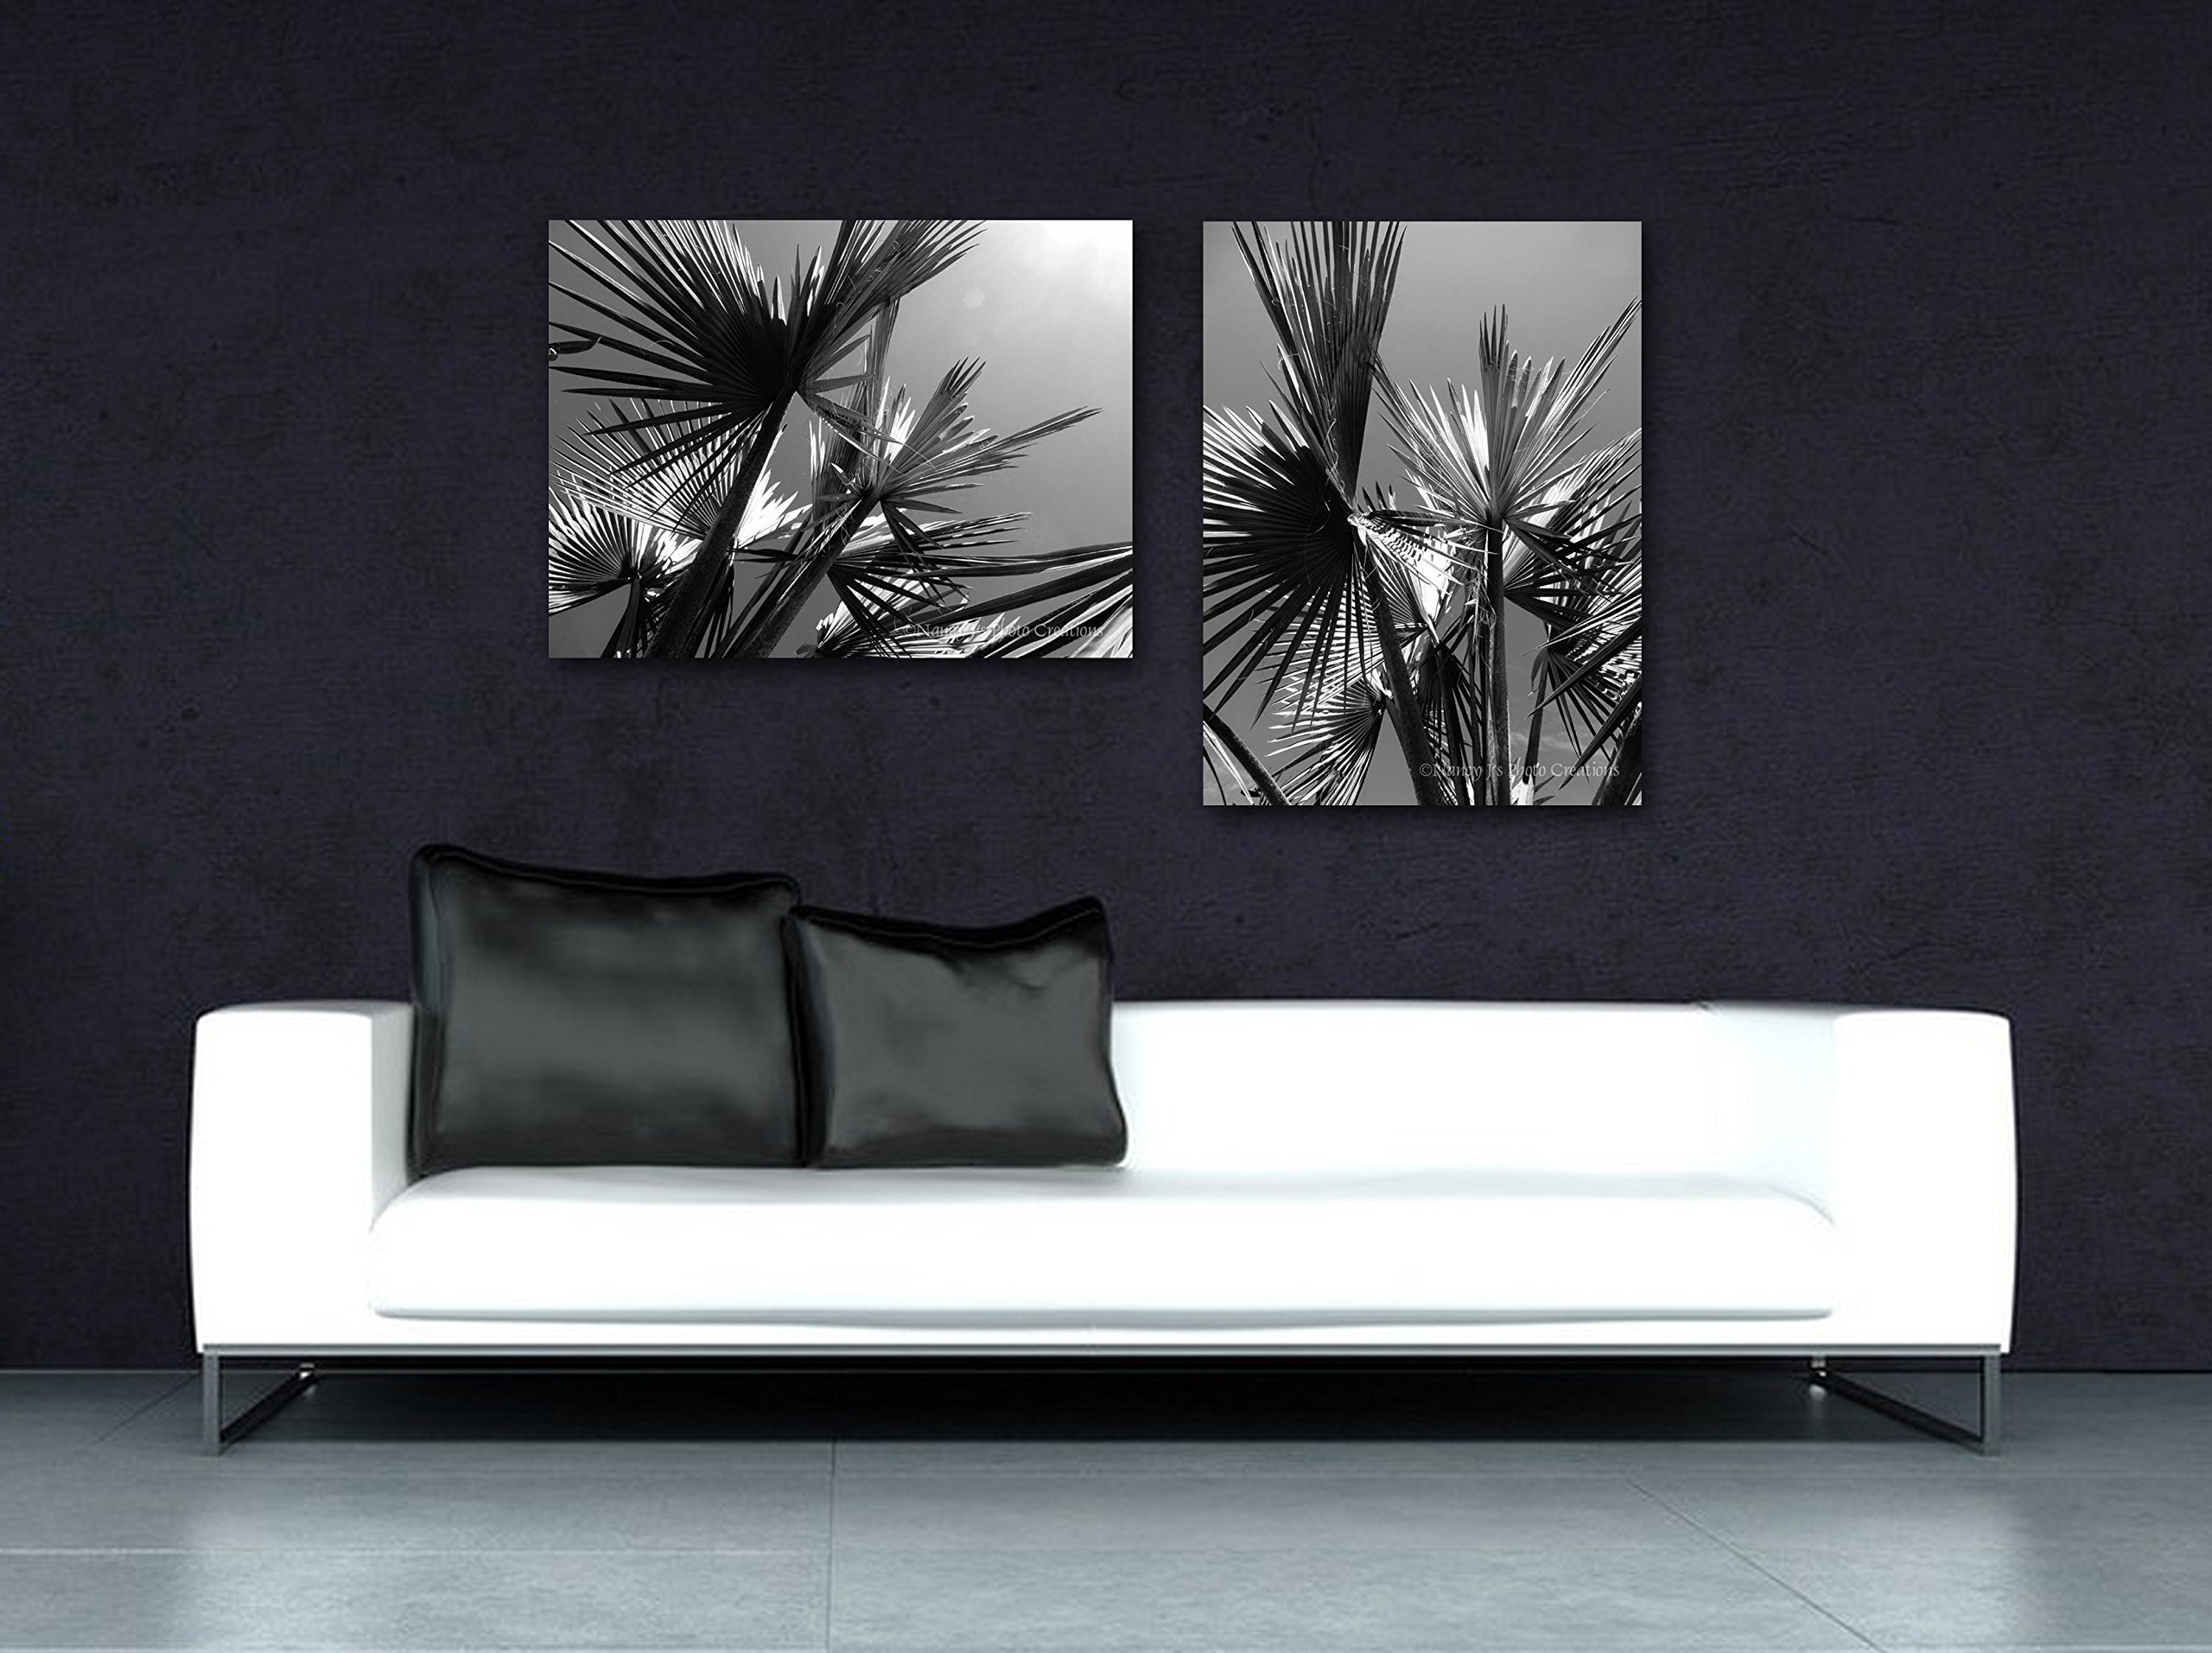 Asymmetrical Set of Two Palm Tree Photos on CANVAS Black and White Photographic Prints Gray Wall Decor for Home or Office Bold Monochromatic Art Ready to Hang 8x10 8x12 11x14 12x18 16x20 16x24 20x30